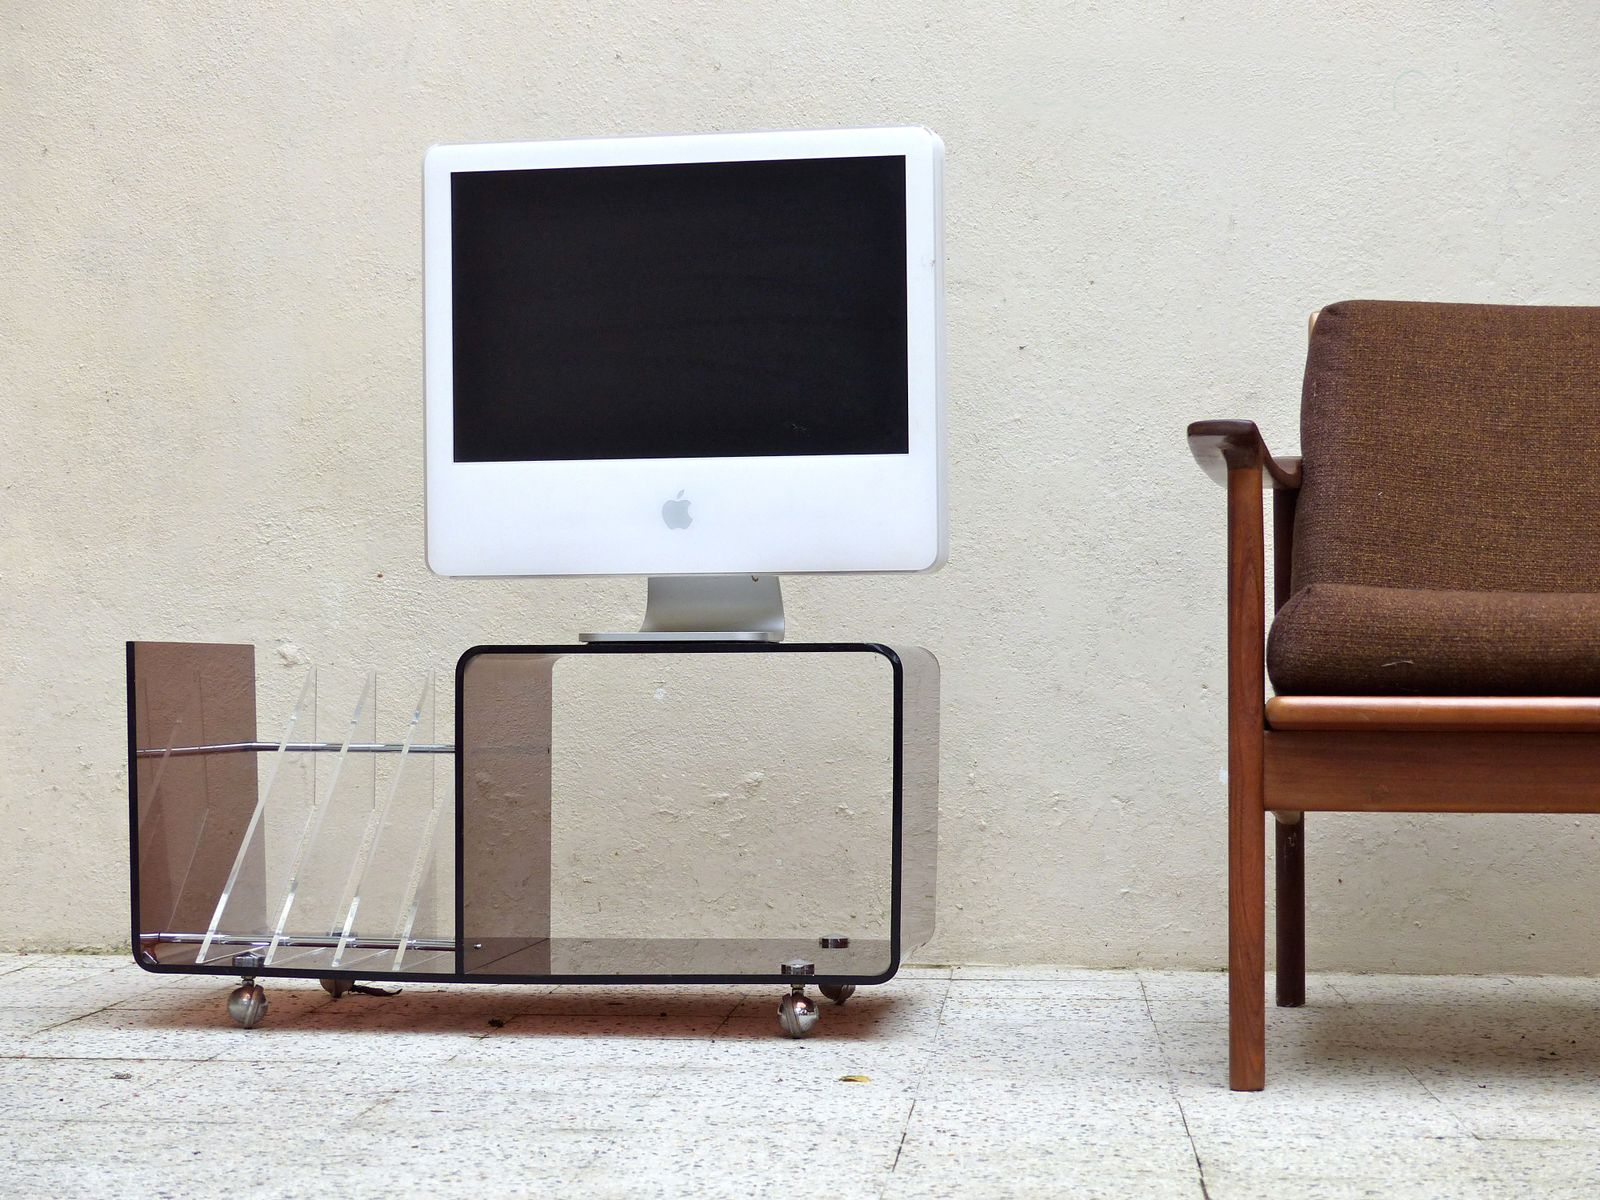 Meuble Tv Roche Bobois Ebay Beautiful Price Per Piece With Roche Bobois Meuble Tv